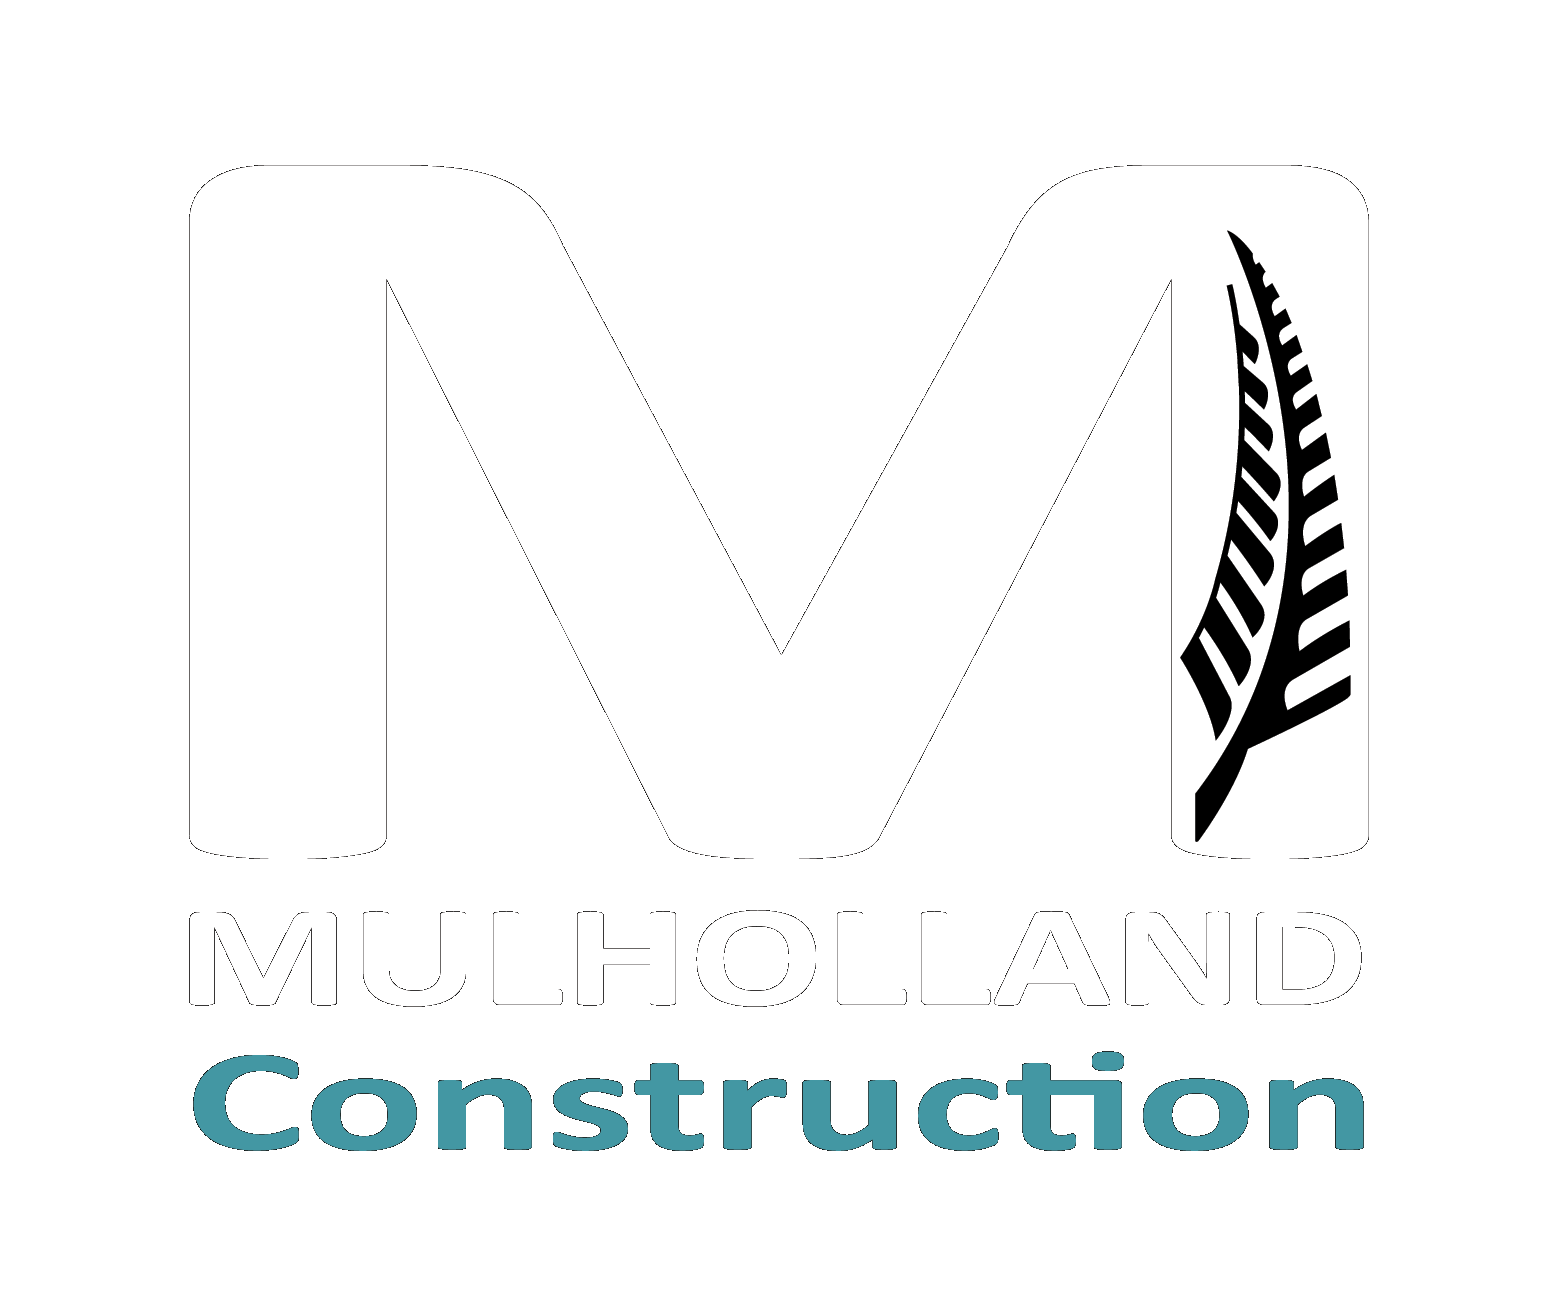 Mulholland Construction